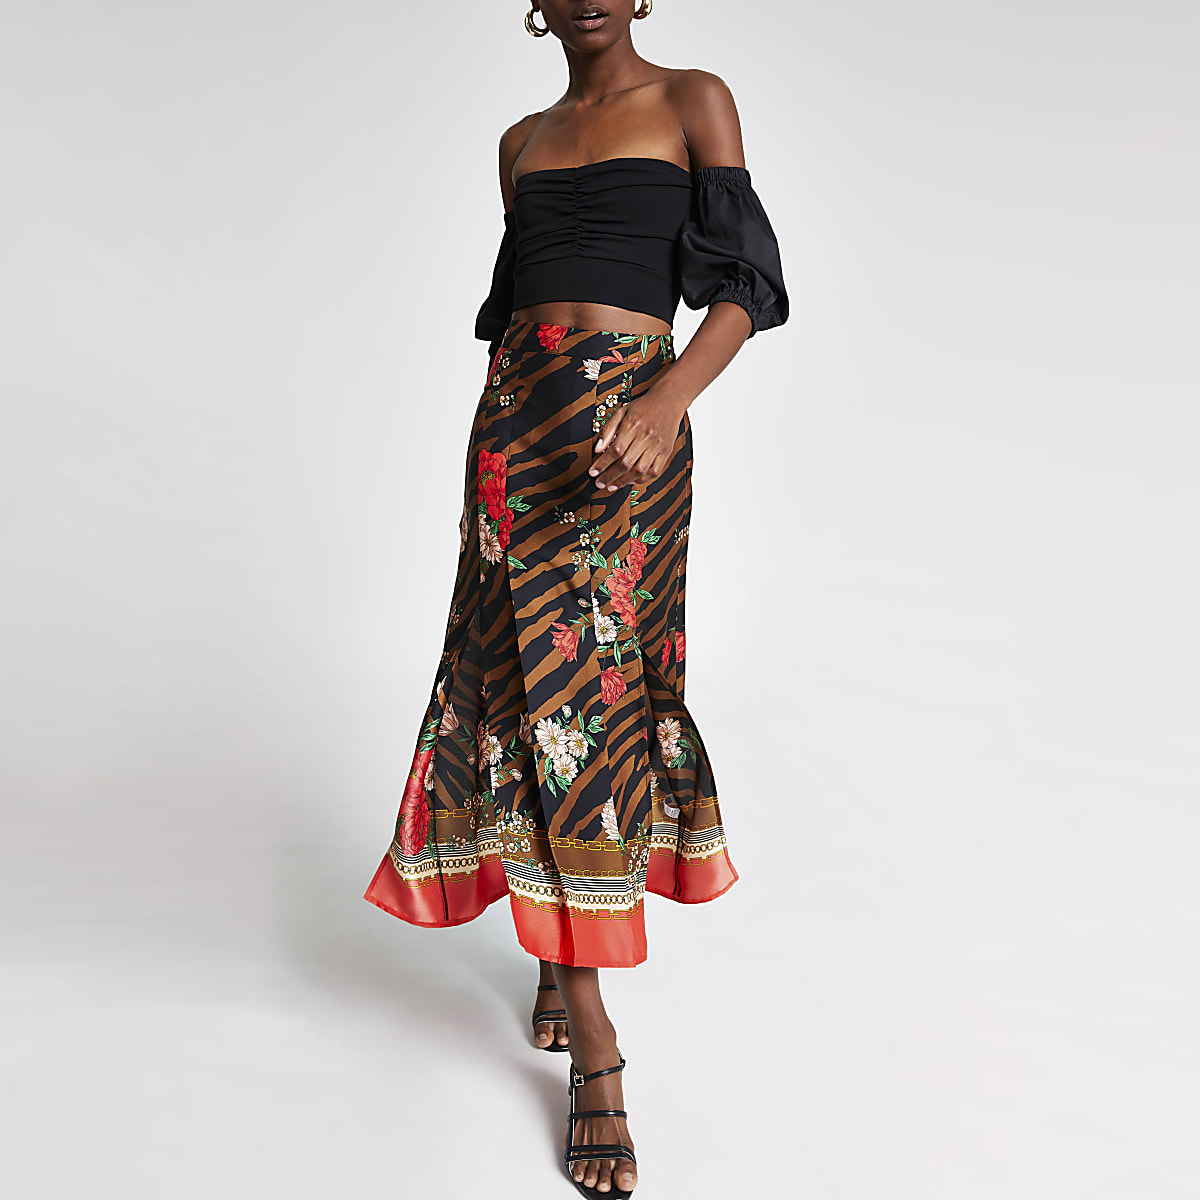 Brown zebra print midi skirt